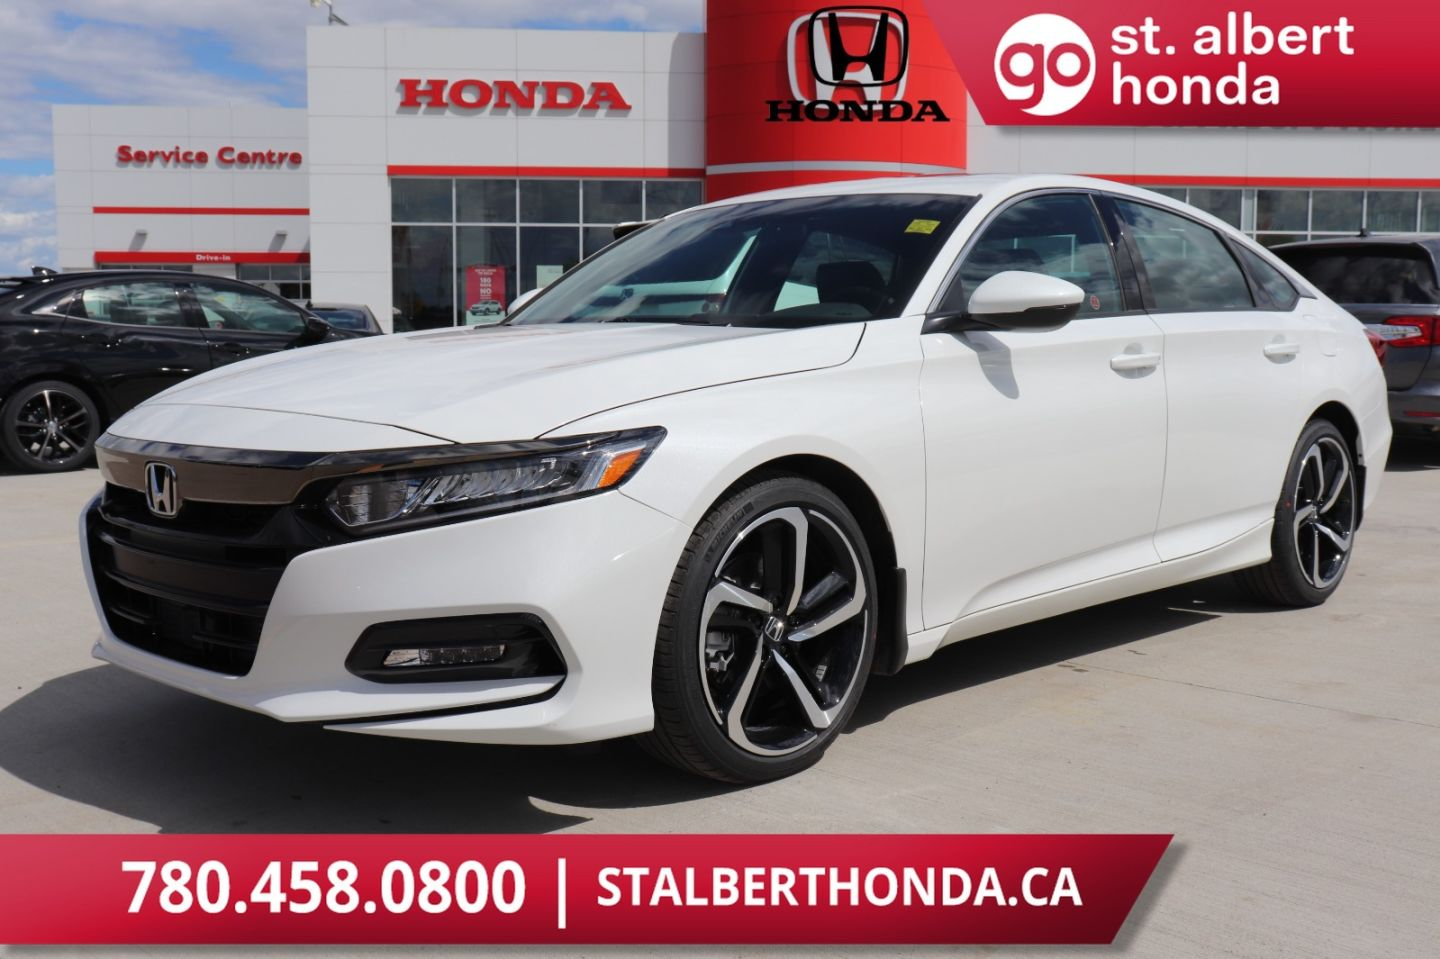 2020 Honda Accord Sedan Sport for sale in St. Albert, Alberta